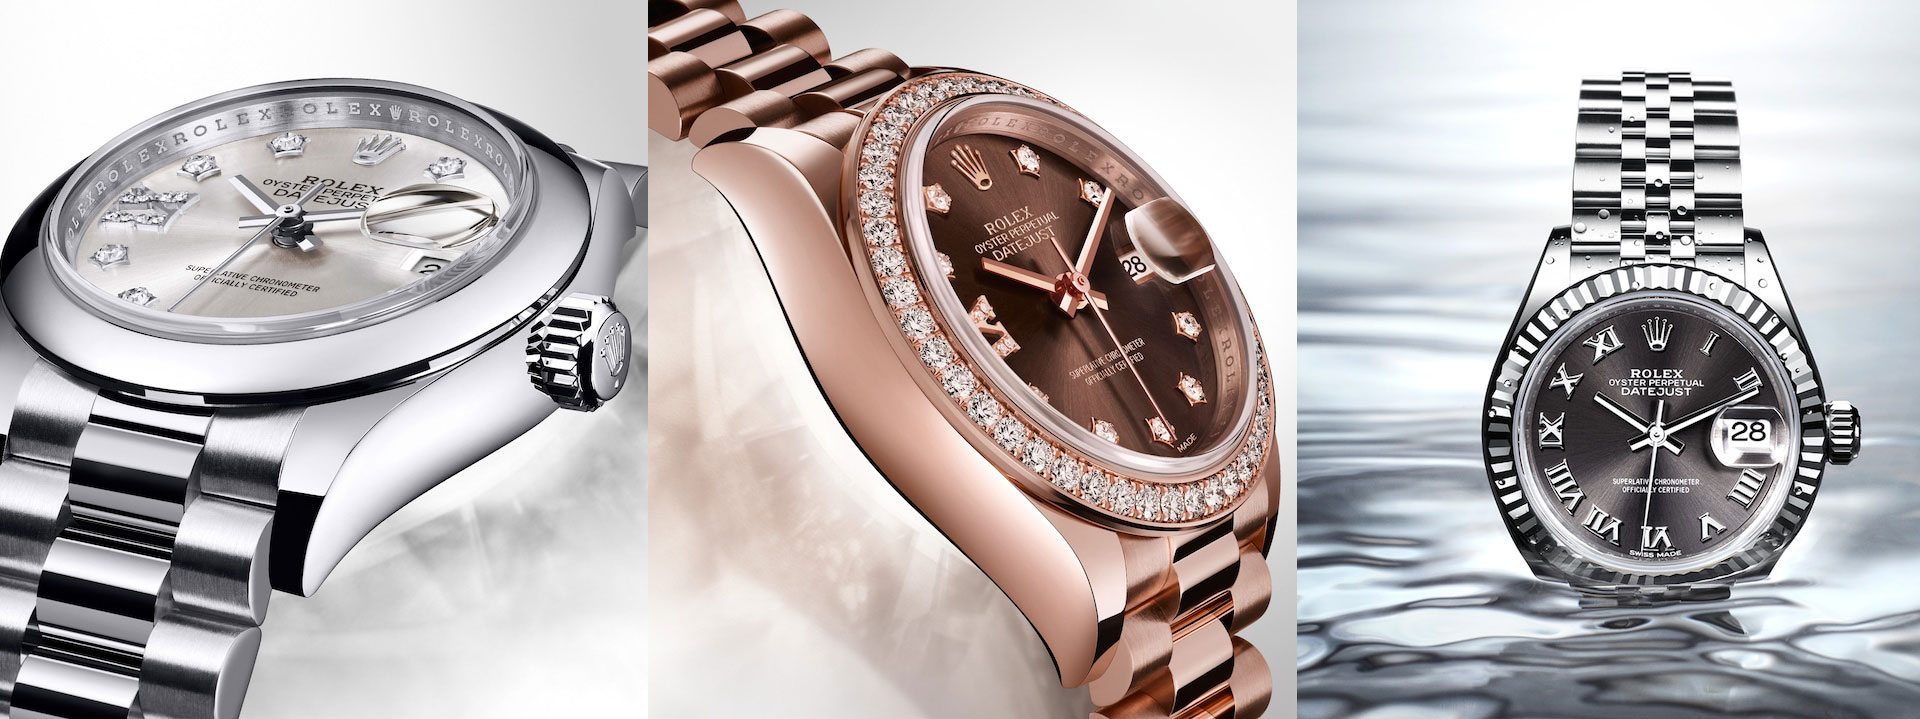 lady-datejust-2